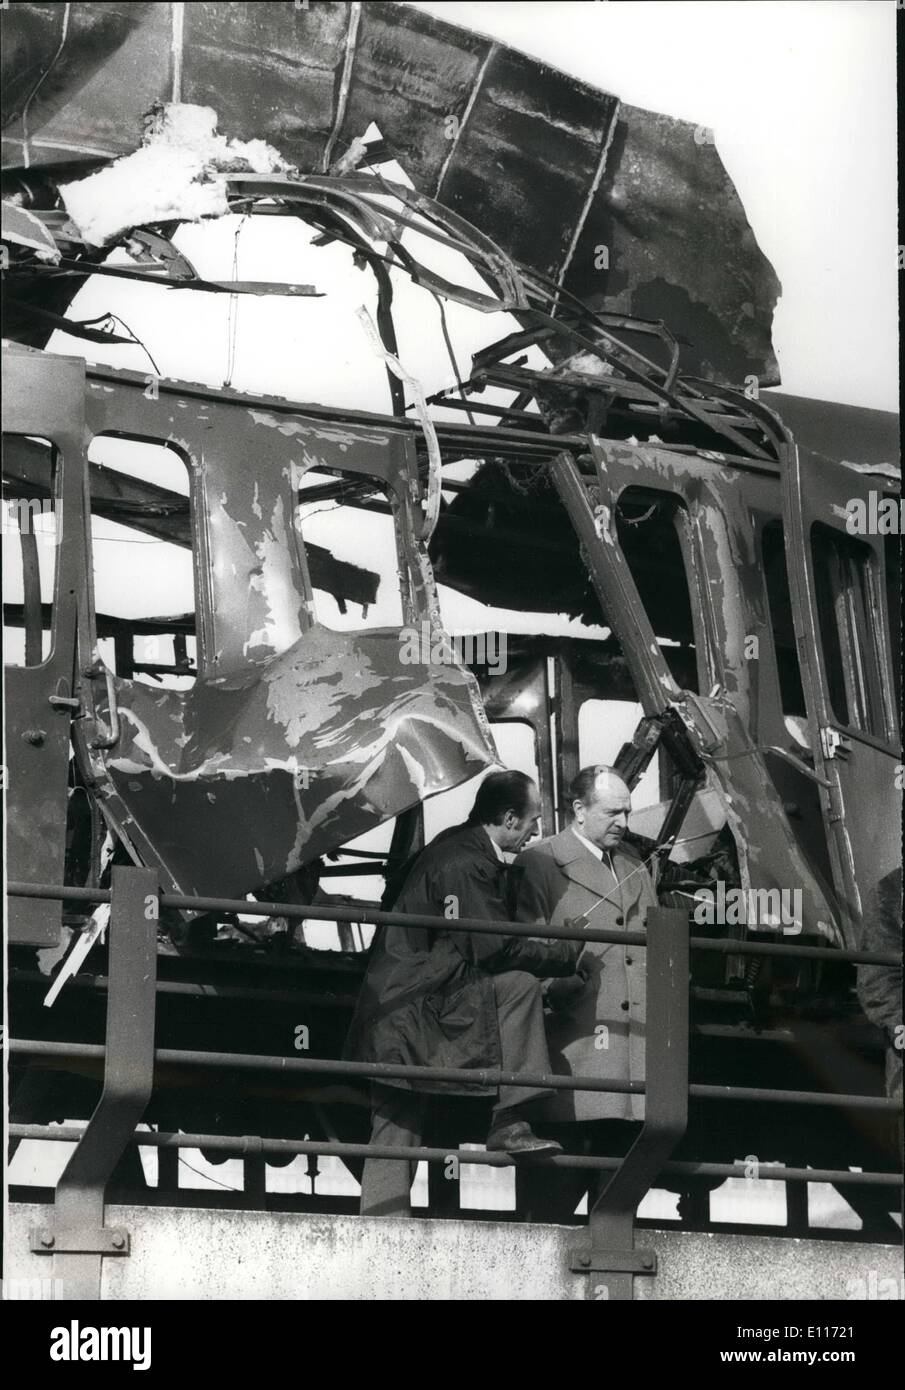 Mar. 03, 1976 - A Bomb Blasts An Empty Train Outside Cannon Street Station: A bomb exploded on an empty train thatStock Photo